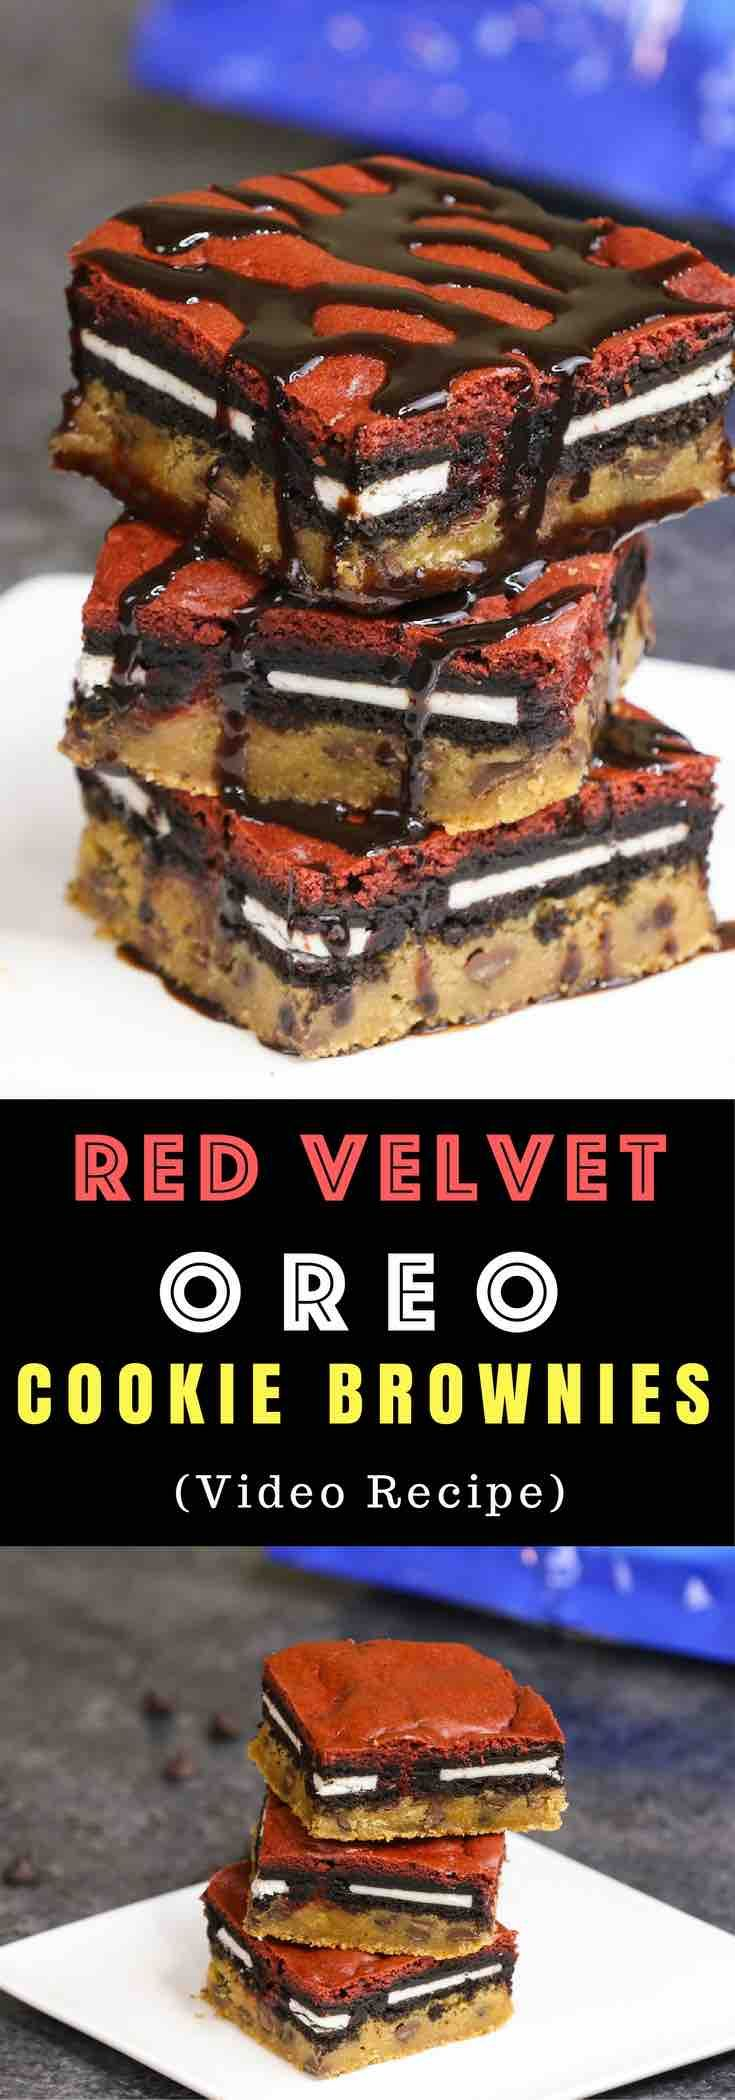 Satisfy your most decadent dessert cravings with these red velvet slutty brownies, a mouthwatering combination of red velvet cake, oreos and cookie dough!